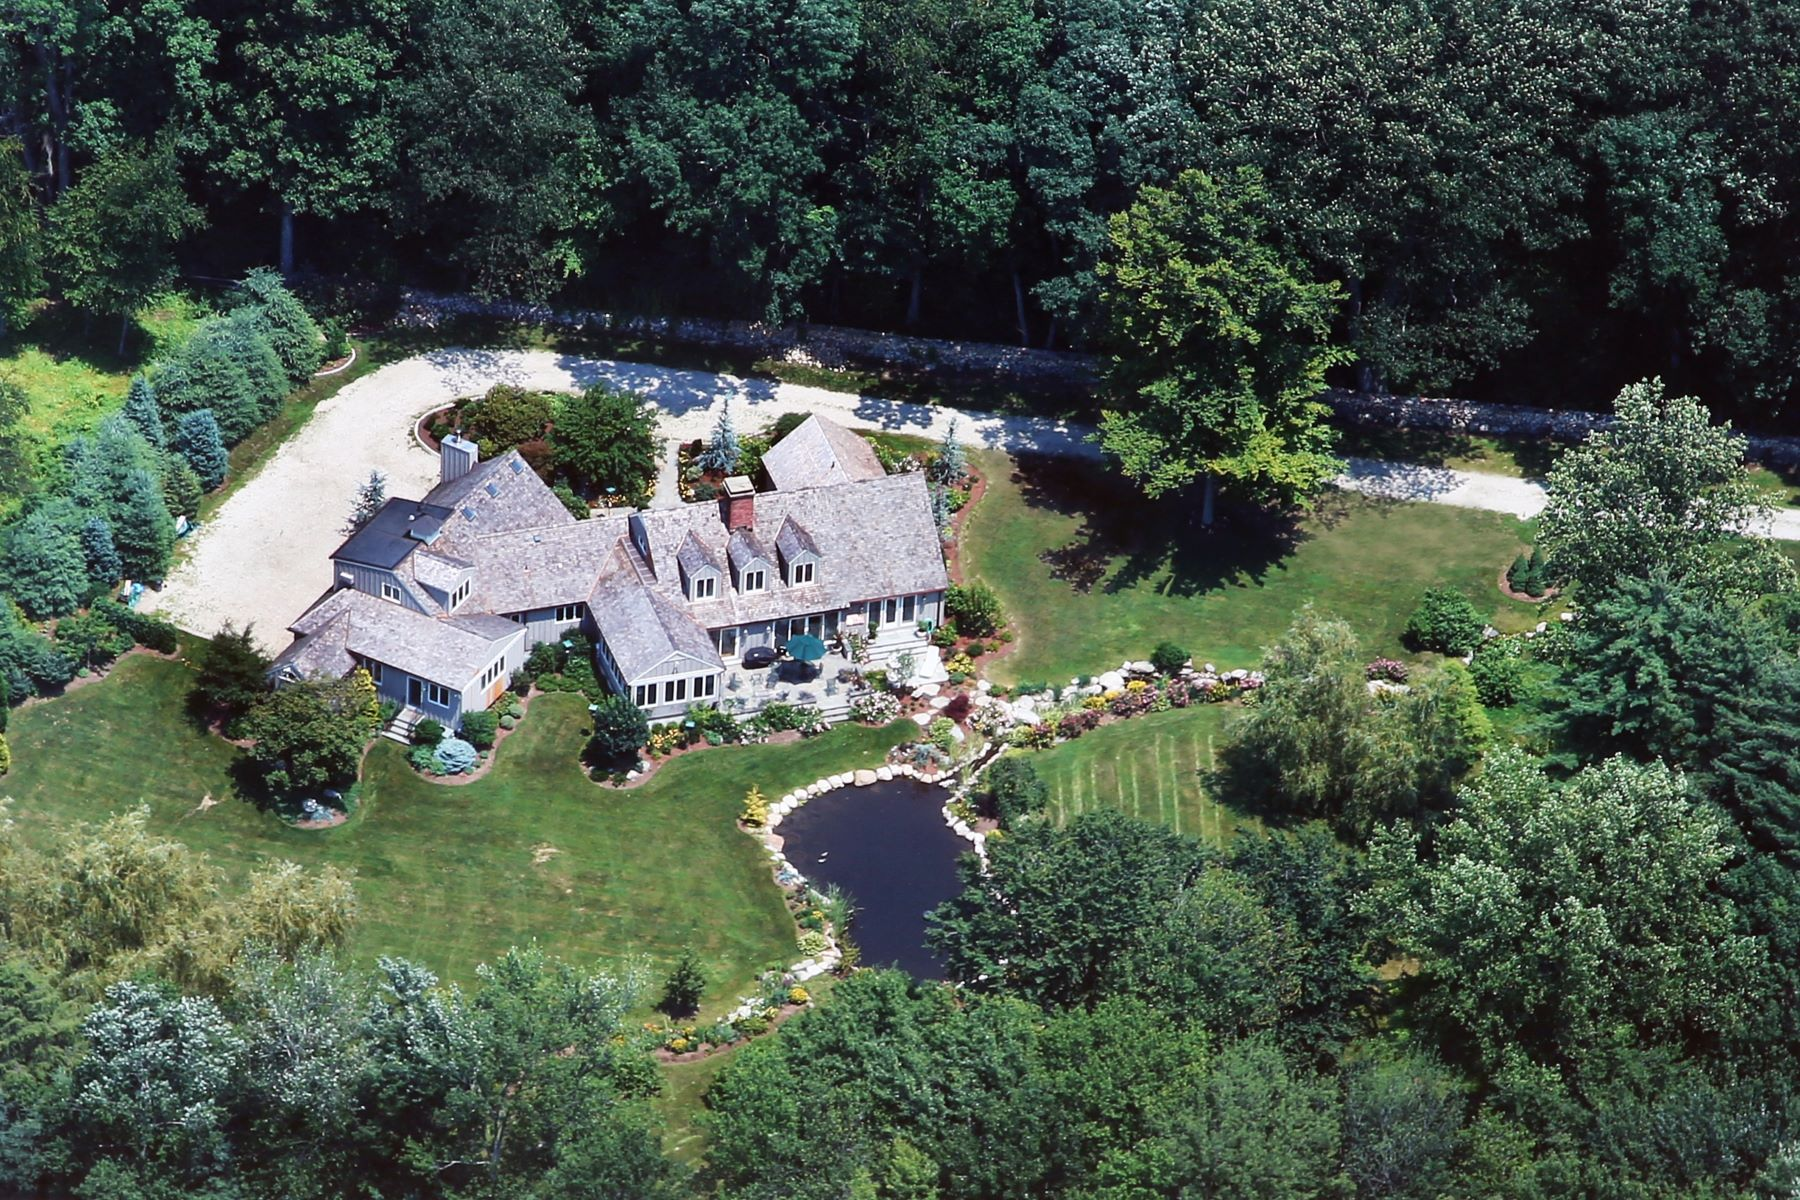 Single Family Home for Sale at Magnificent, Private Gated Custom Home in Greenfield Hill 160 Longmeadow Road, Fairfield, Connecticut, 06824 United States